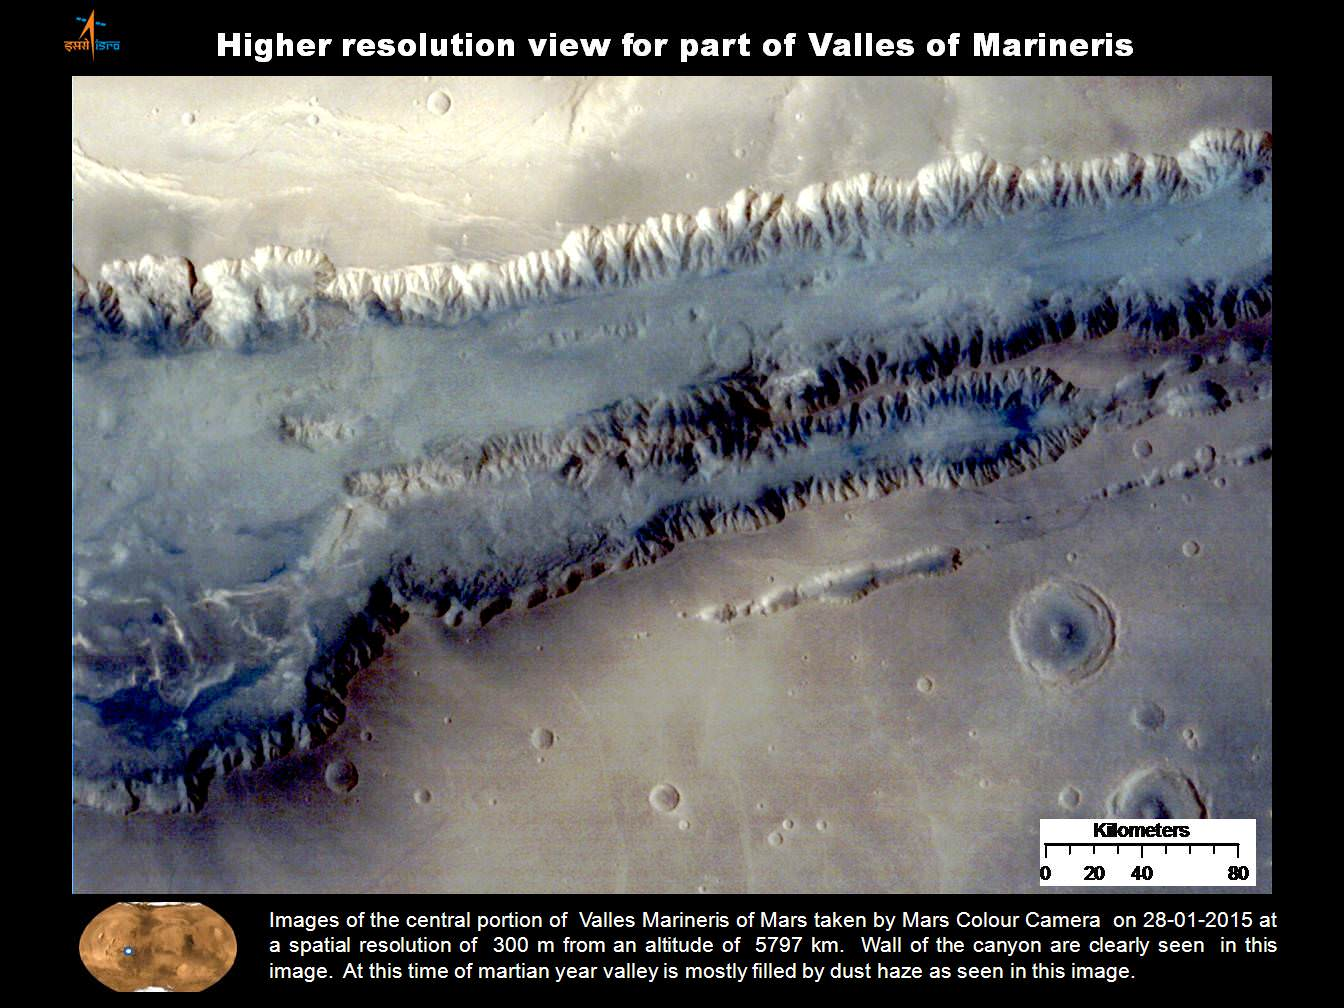 Higher resolution view of a portion of Valles Marineris canyon from India's MOM Mars Mission.   Credit: ISRO